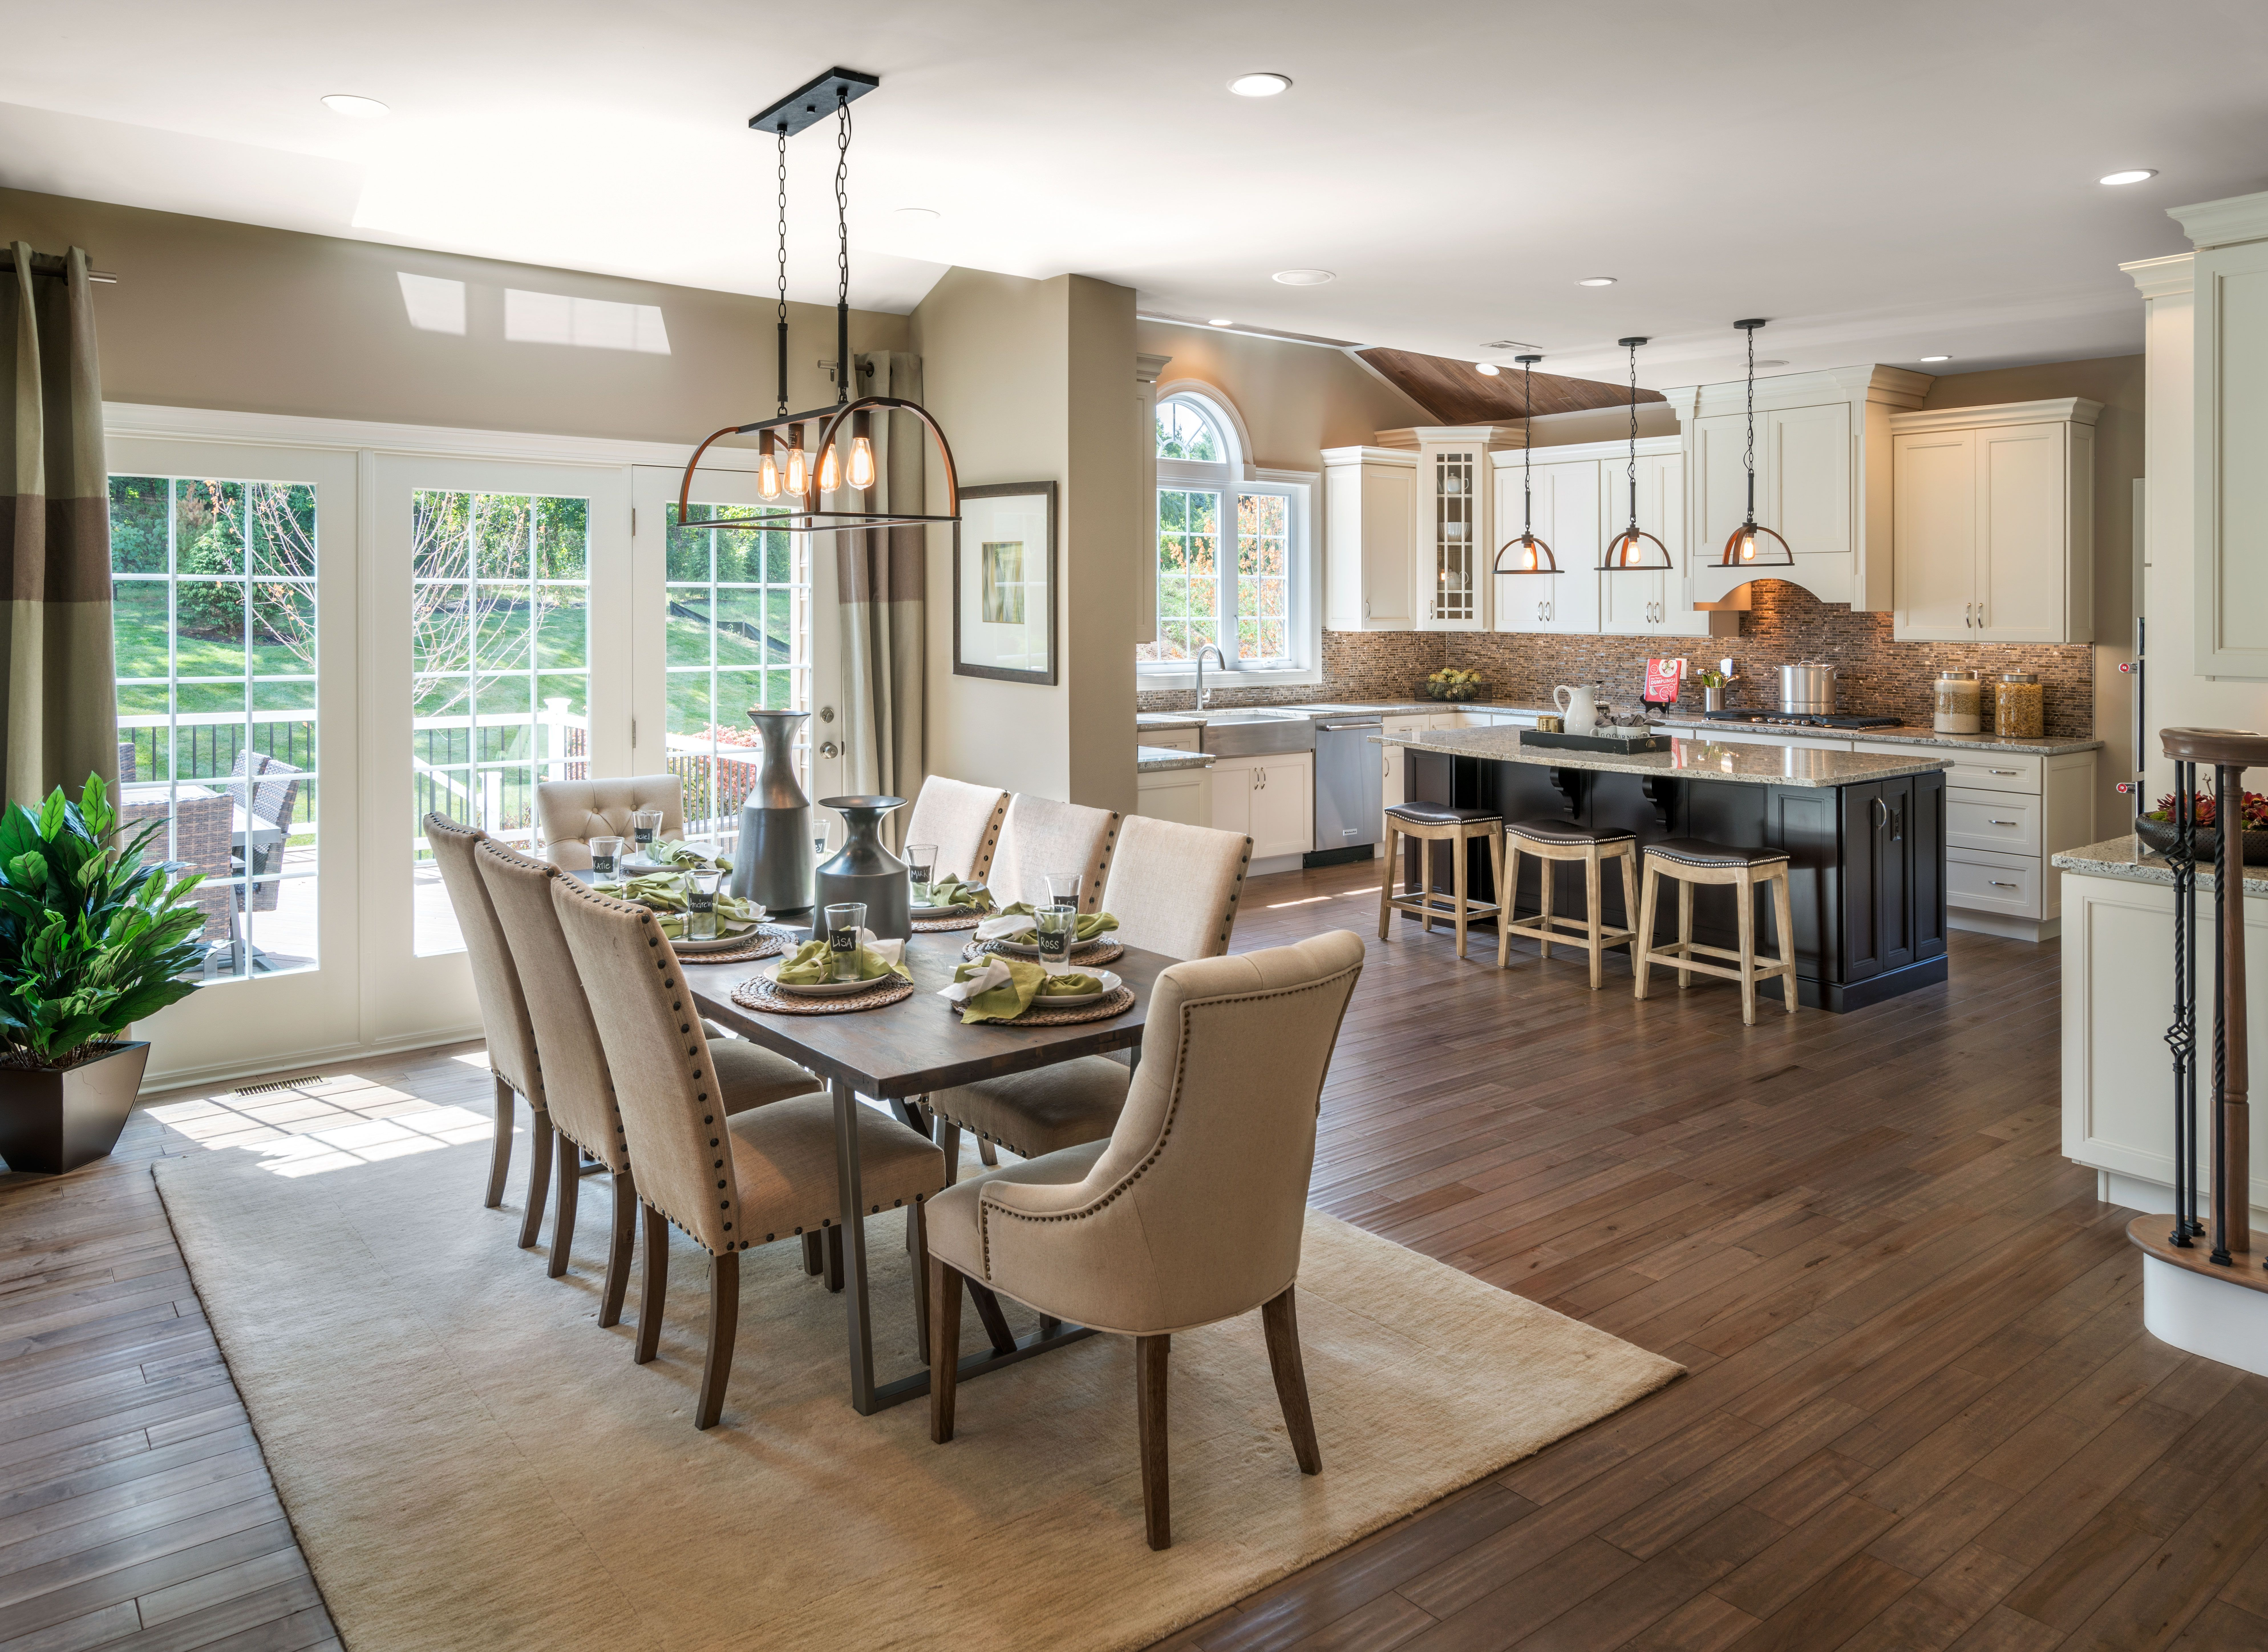 Best Trestle Collection Shown Toll Brothers Possibilities For Design Open Concept Kitchen Living 400 x 300